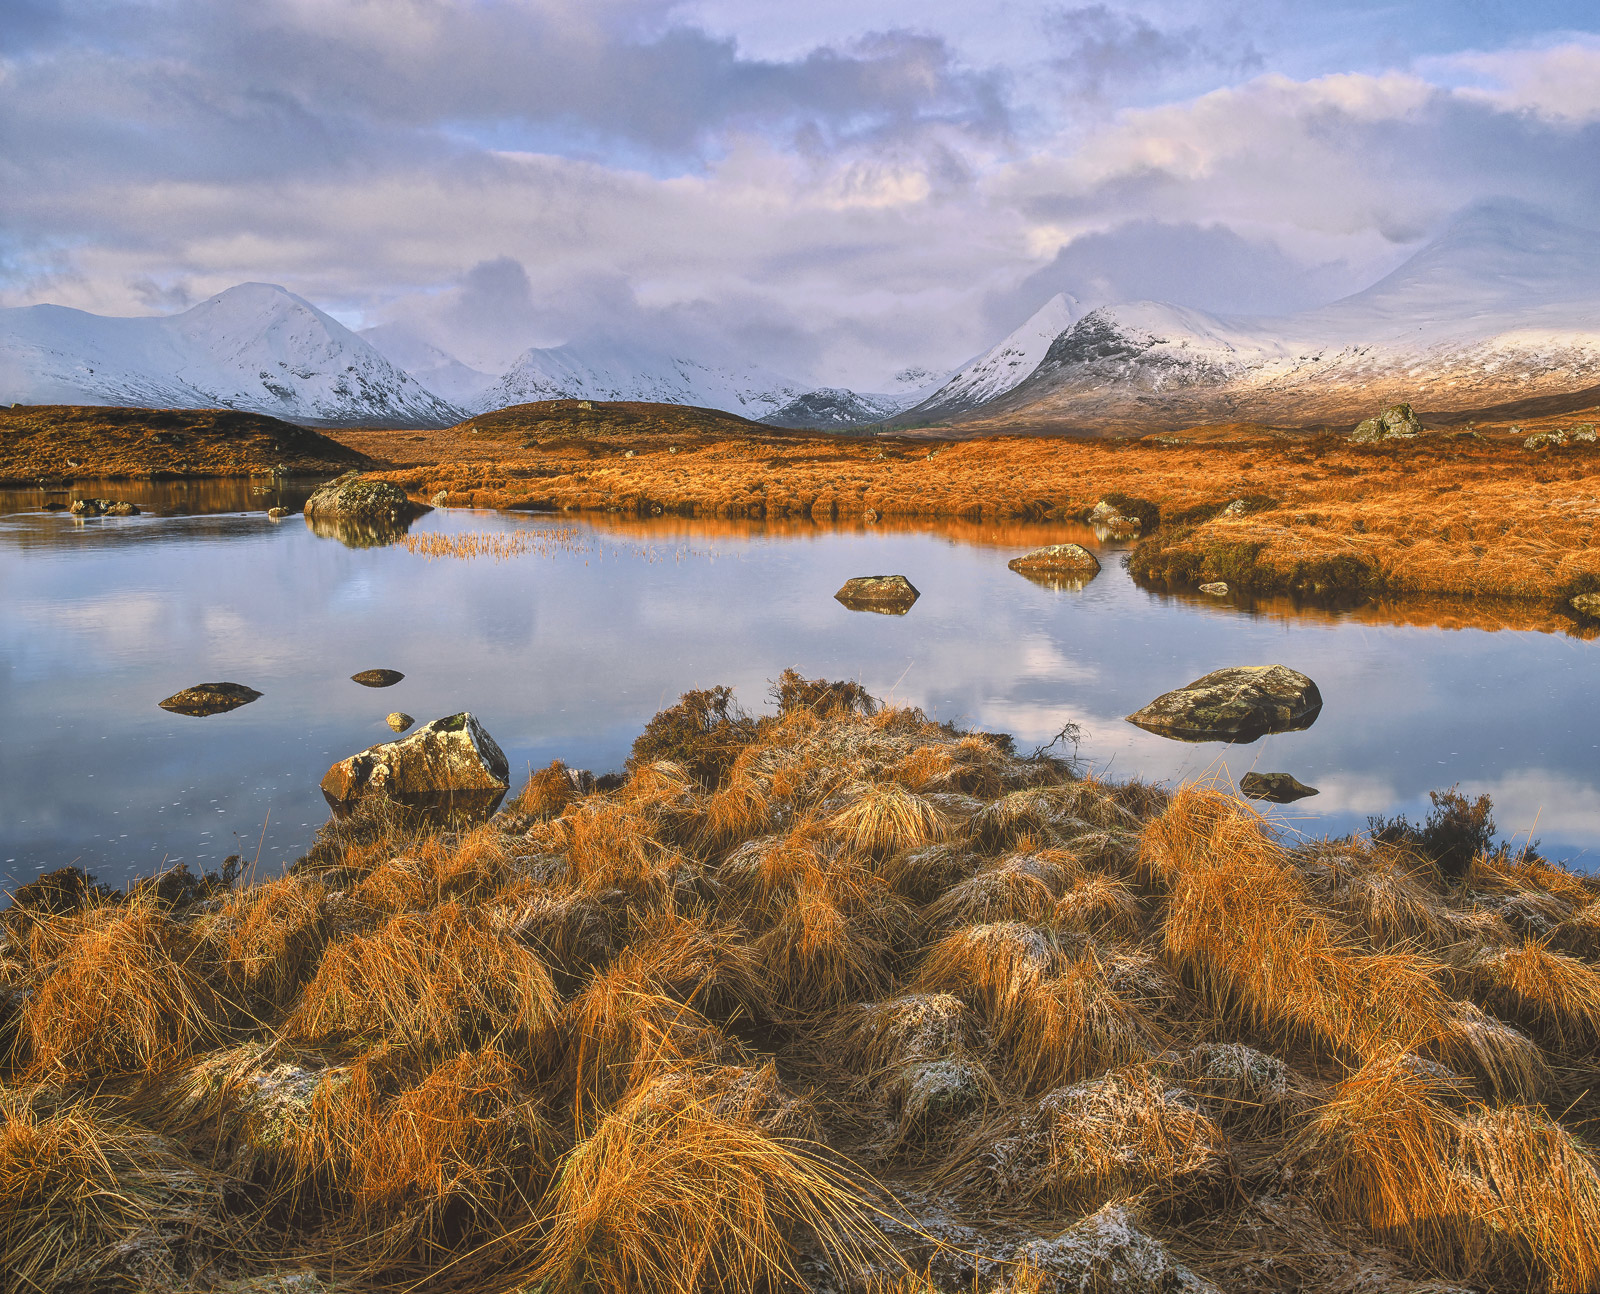 Golden tussocks of grass clump together at the end of a spit of land culminating in a reflection of the snow dusted Blackmount...